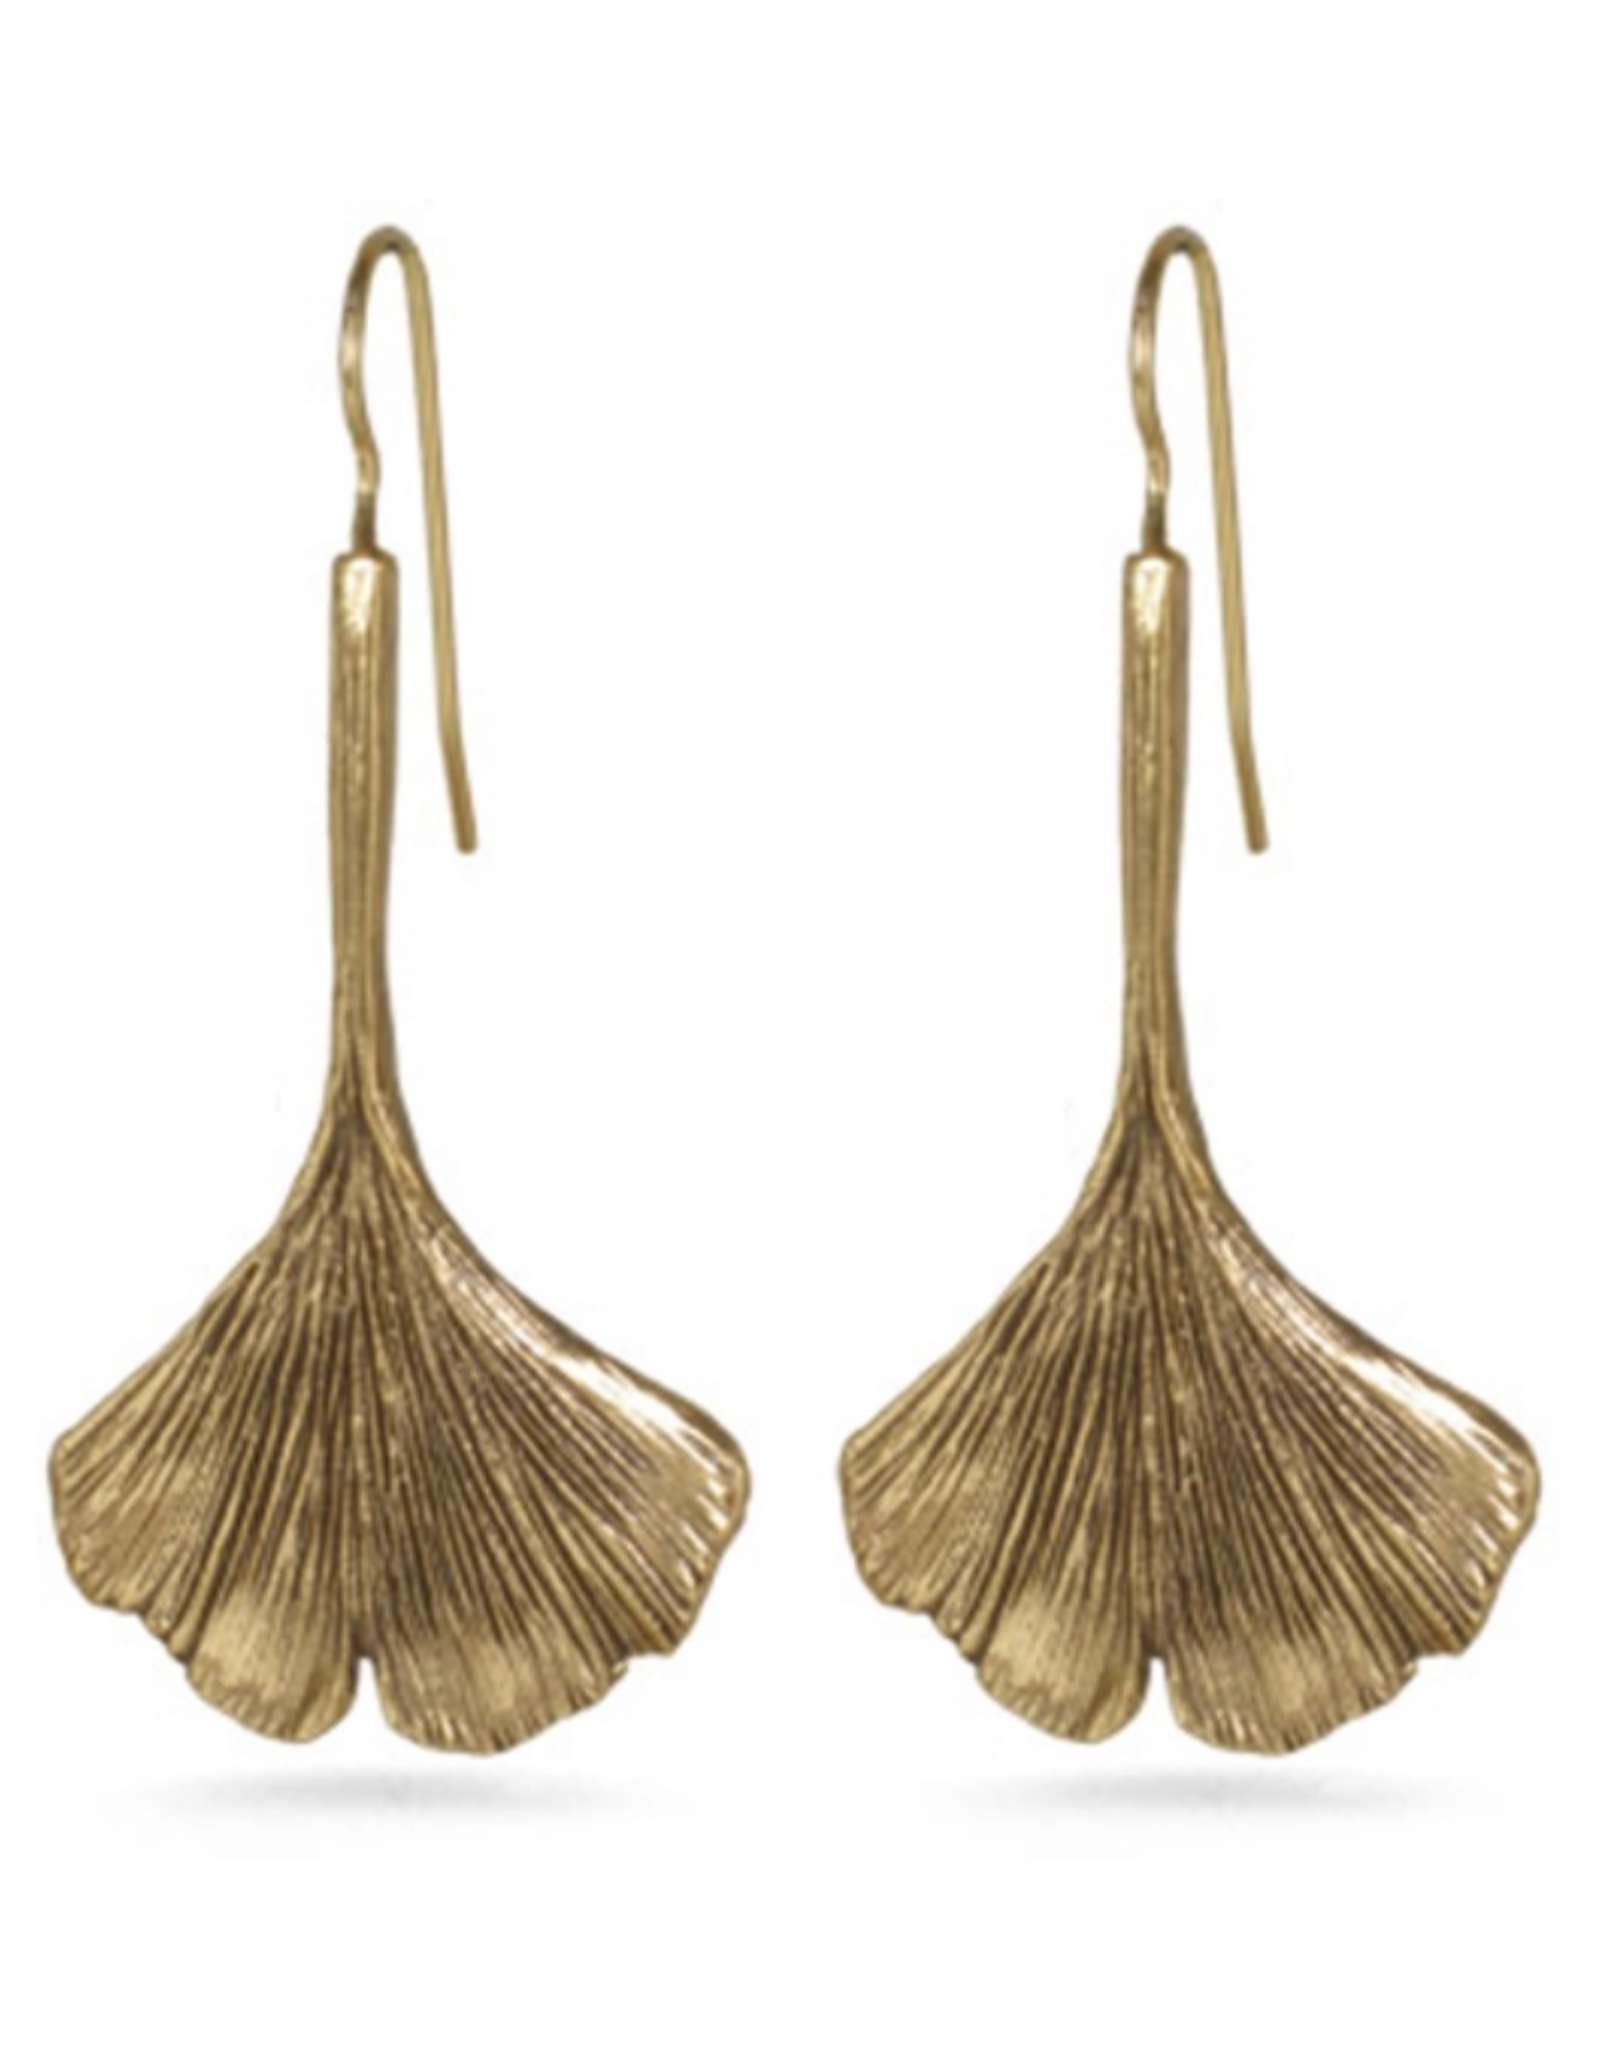 Faire/Museum Reproductions EARRINGS-GINGKO LEAF, RUSTIC GOLD